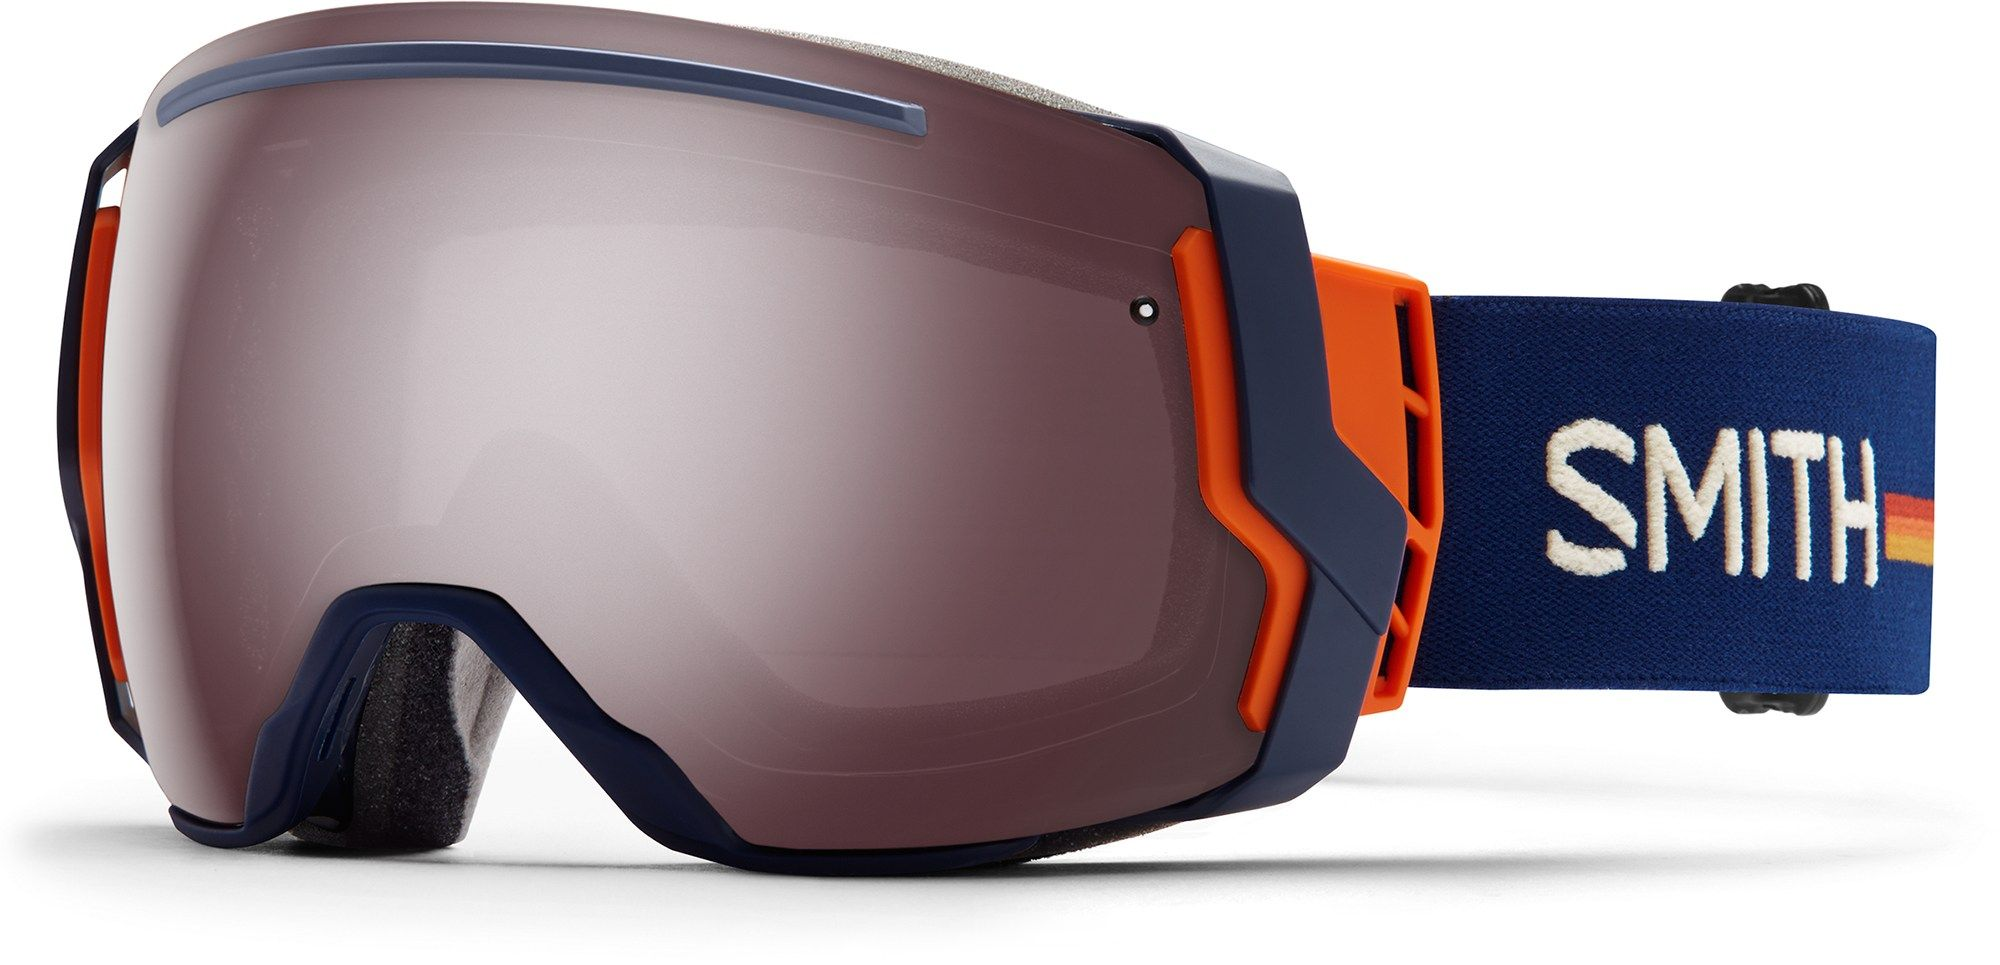 Smith Male I/O7 Snow Goggles Men's Asian Fit Will